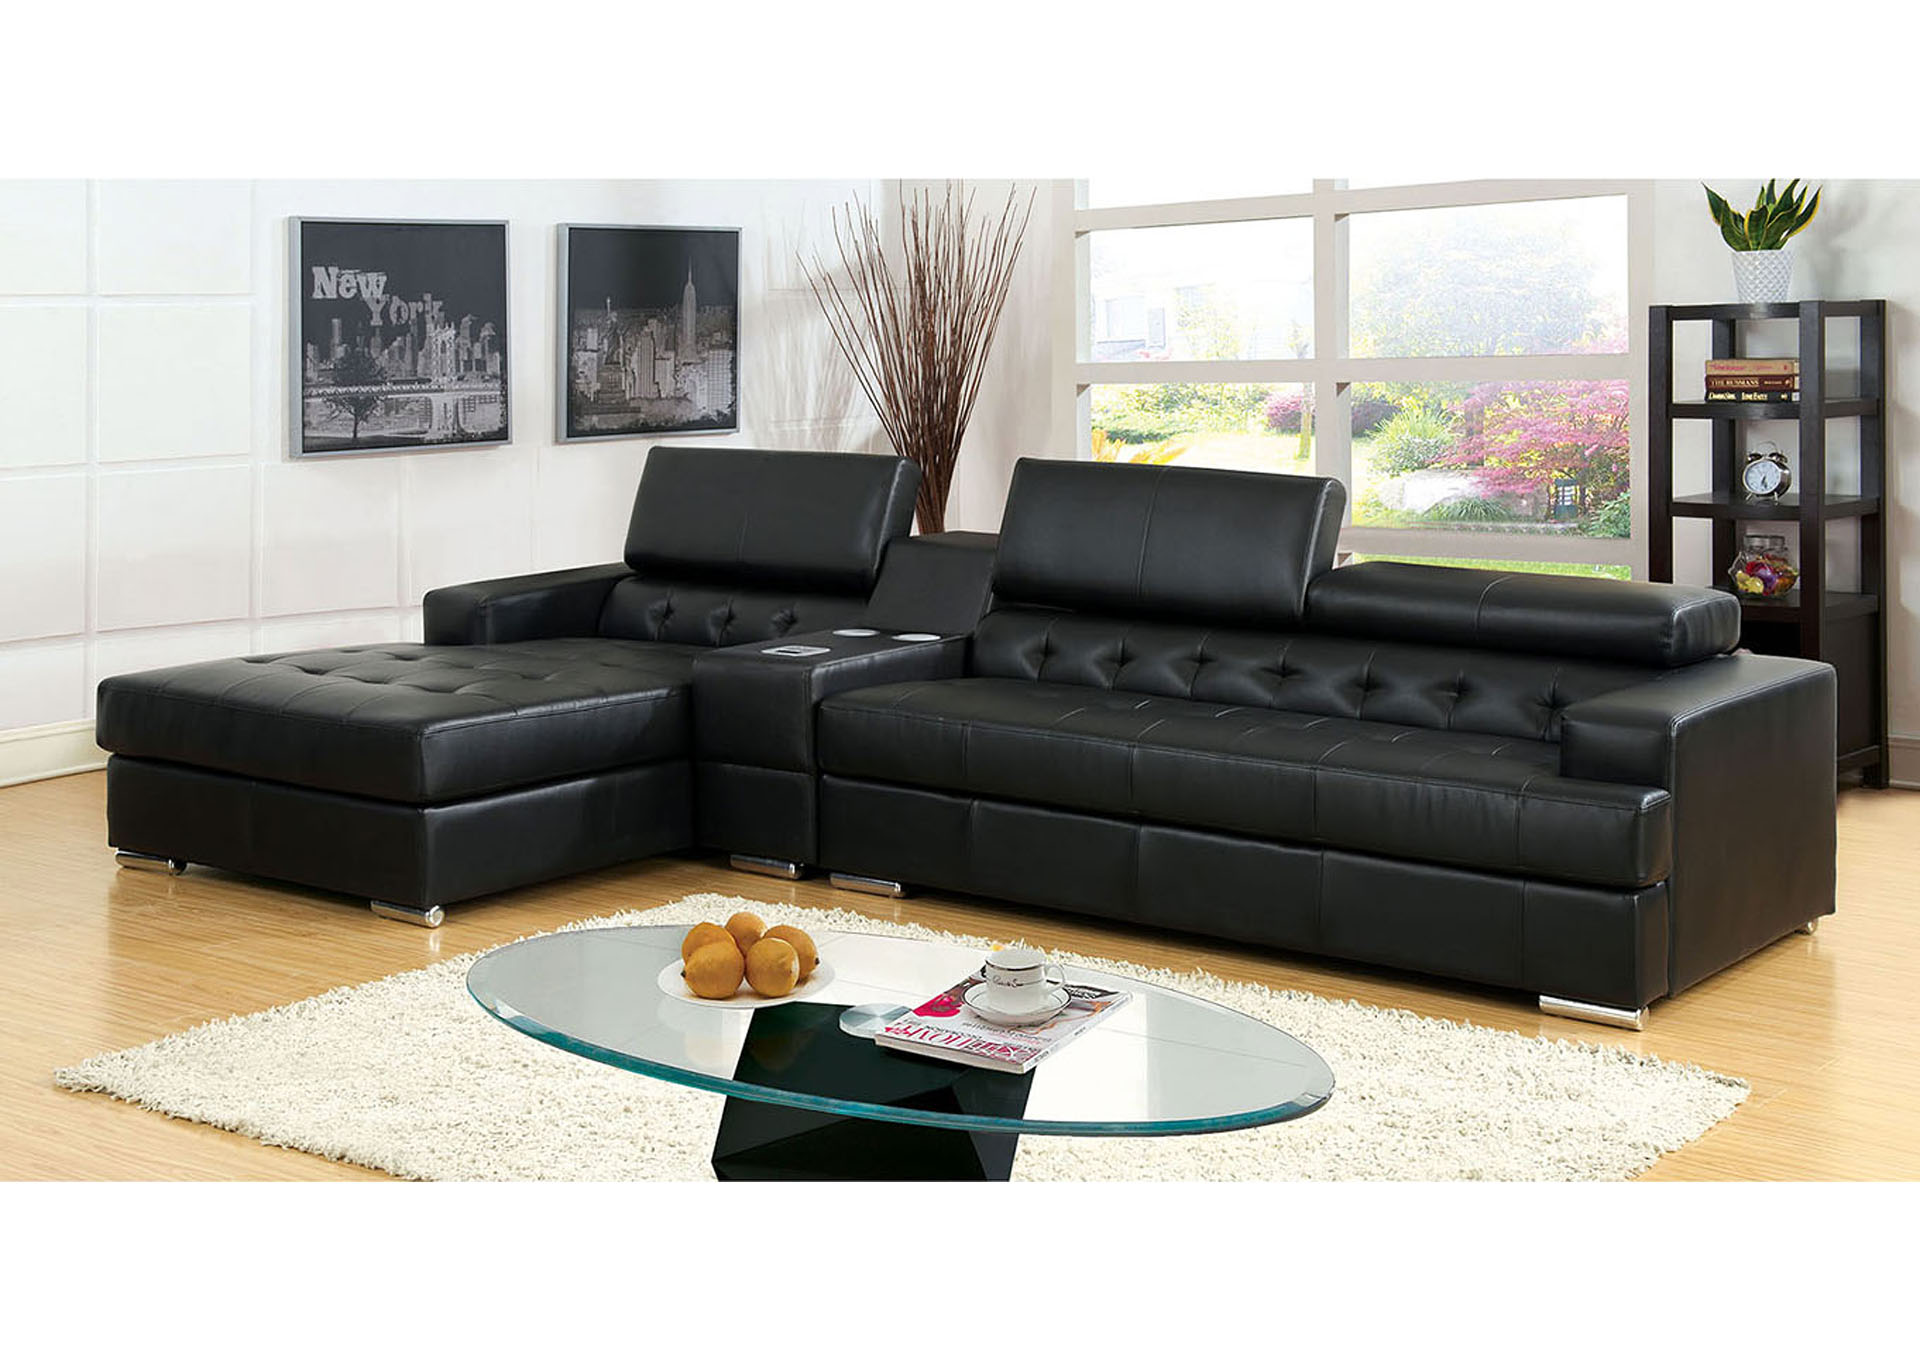 Floria Black Bonded Leather Sectional w/Speaker Console,Furniture of America